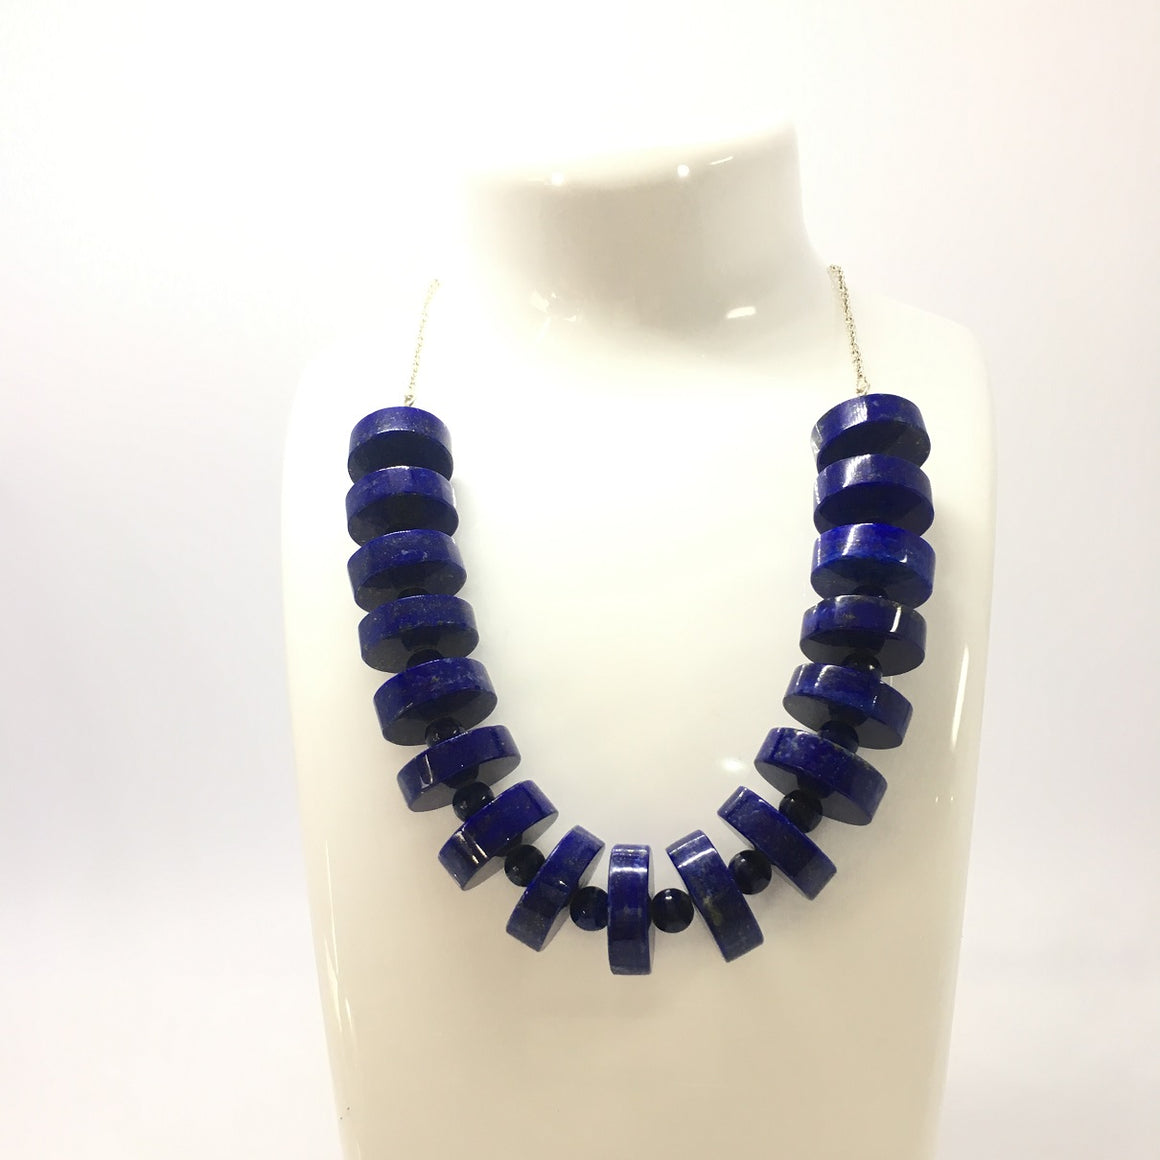 326 Carat Disk and Round Beads Metal Chain Lapis Lazuli Designed Necklace